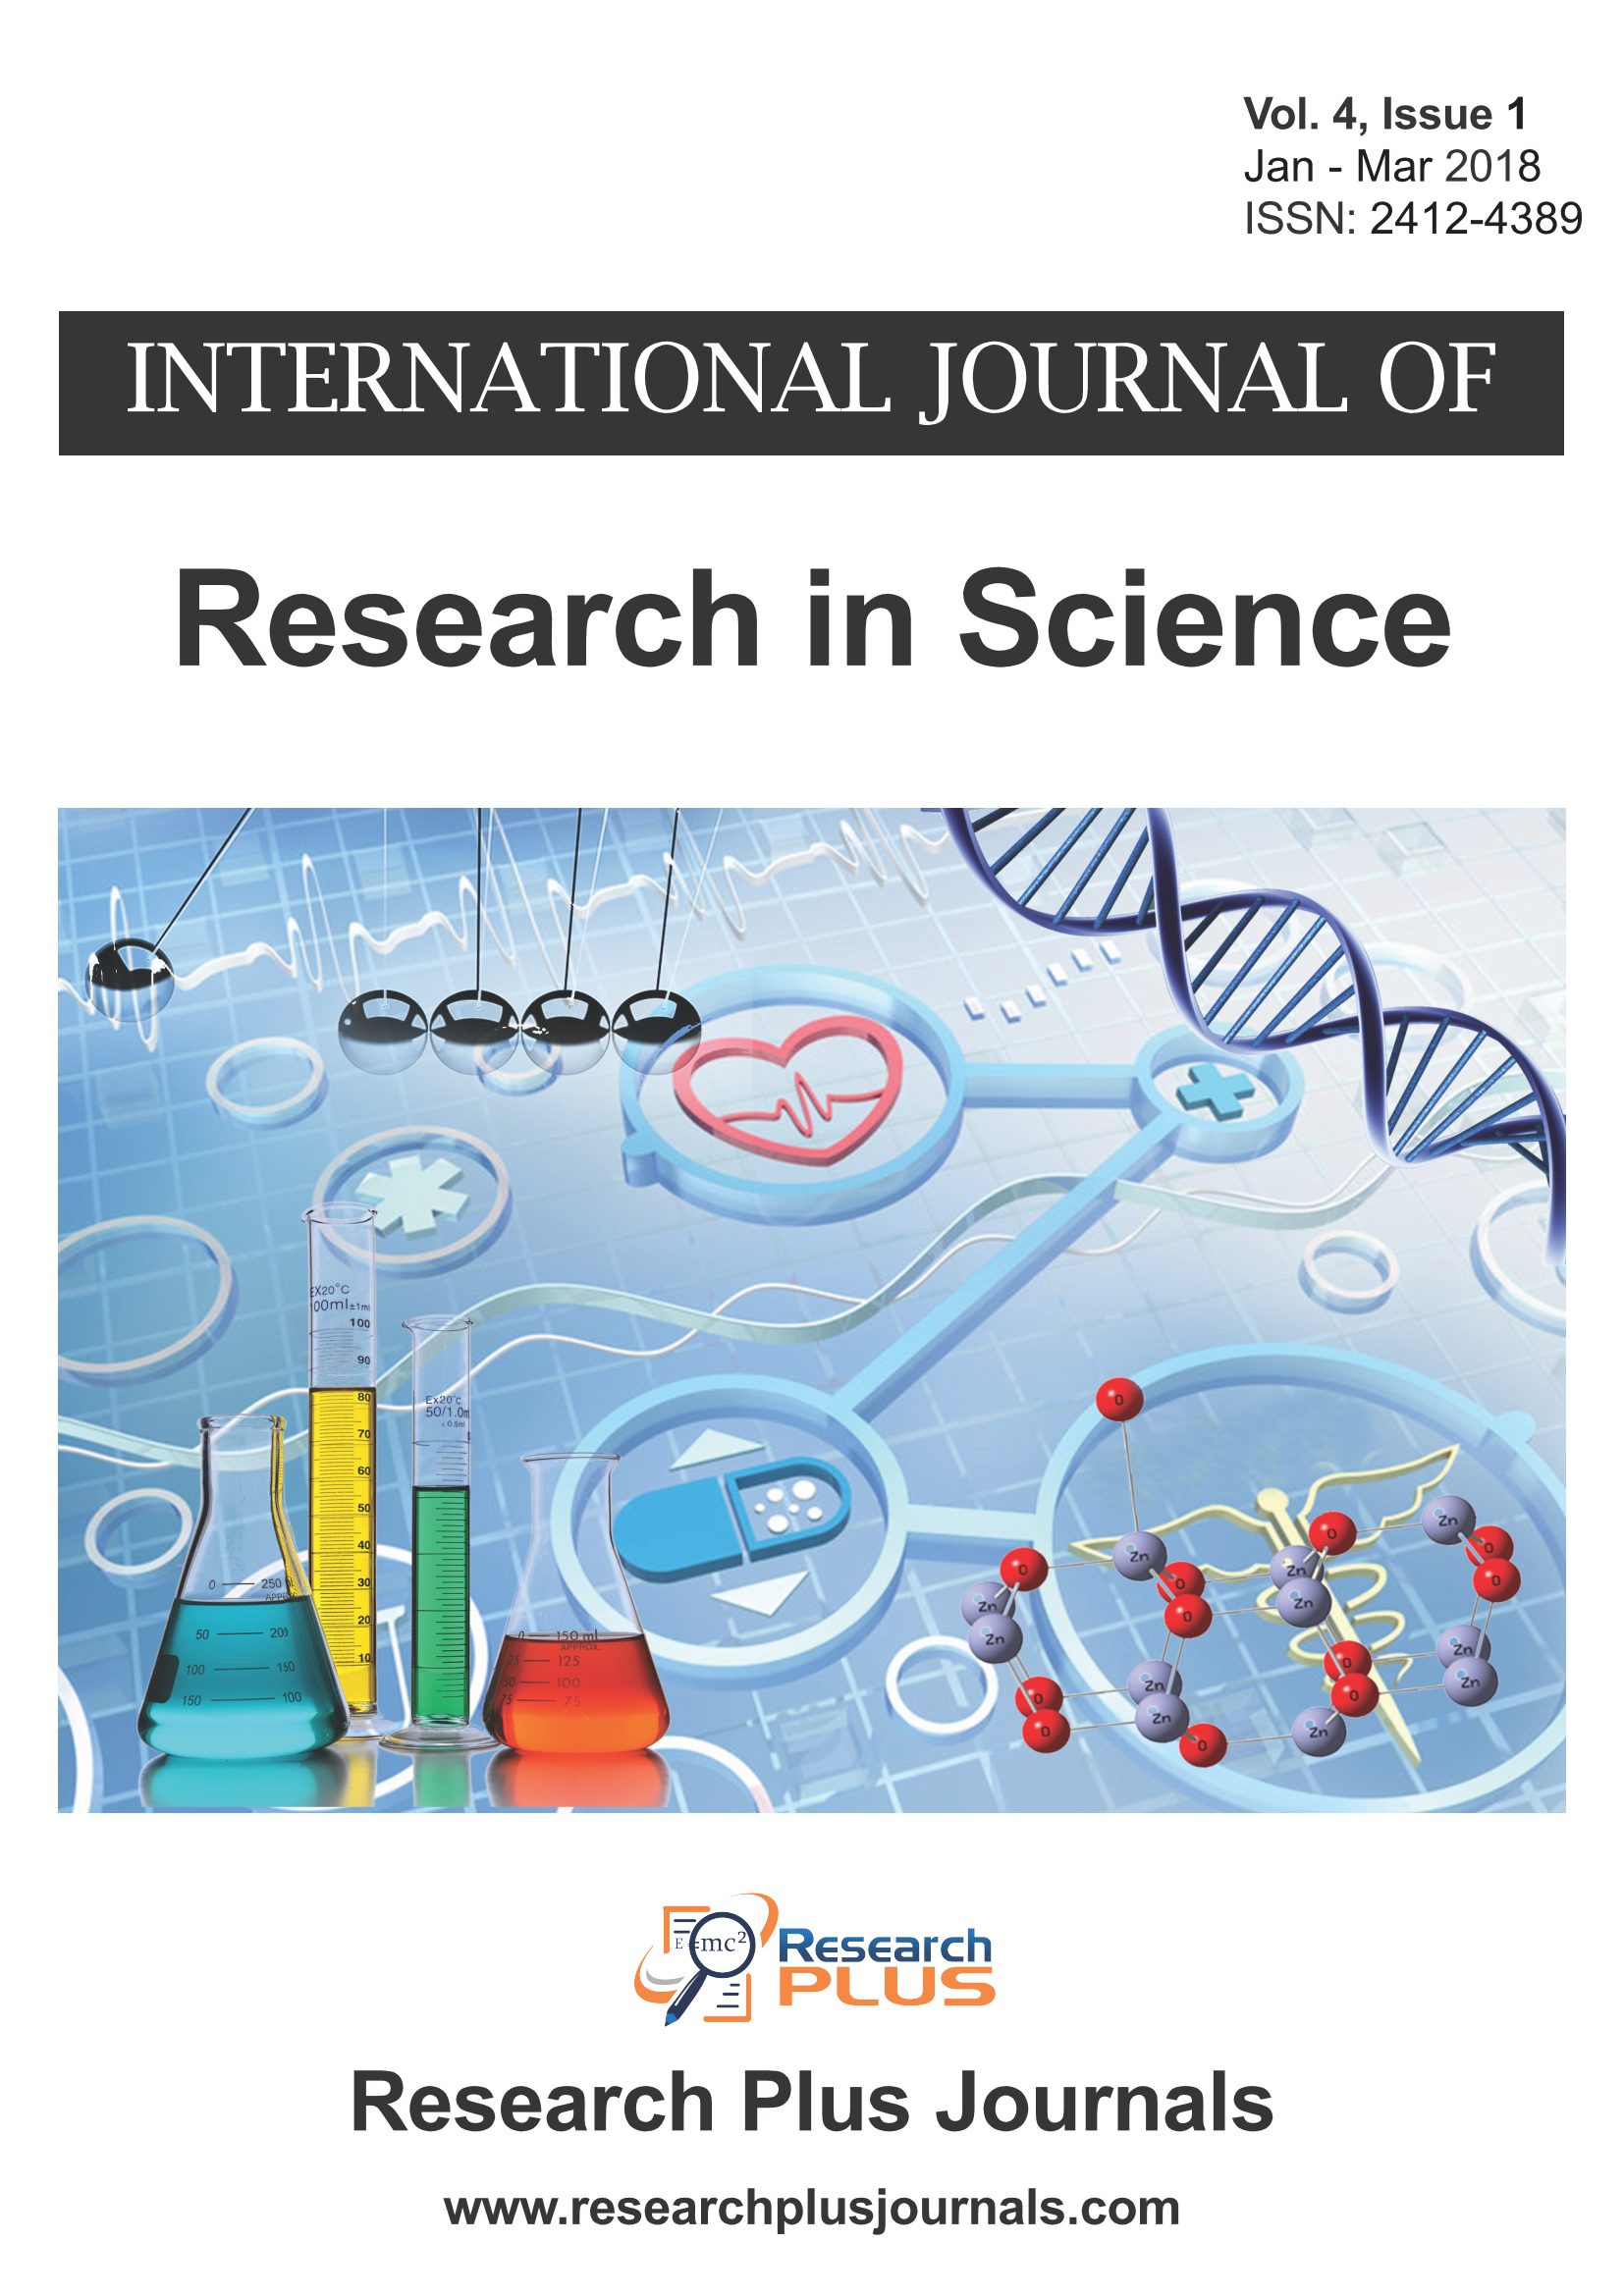 Volume 4, Issue 1, International Journal of Research in Science (IJRS) (Online ISSN 2412-4389)